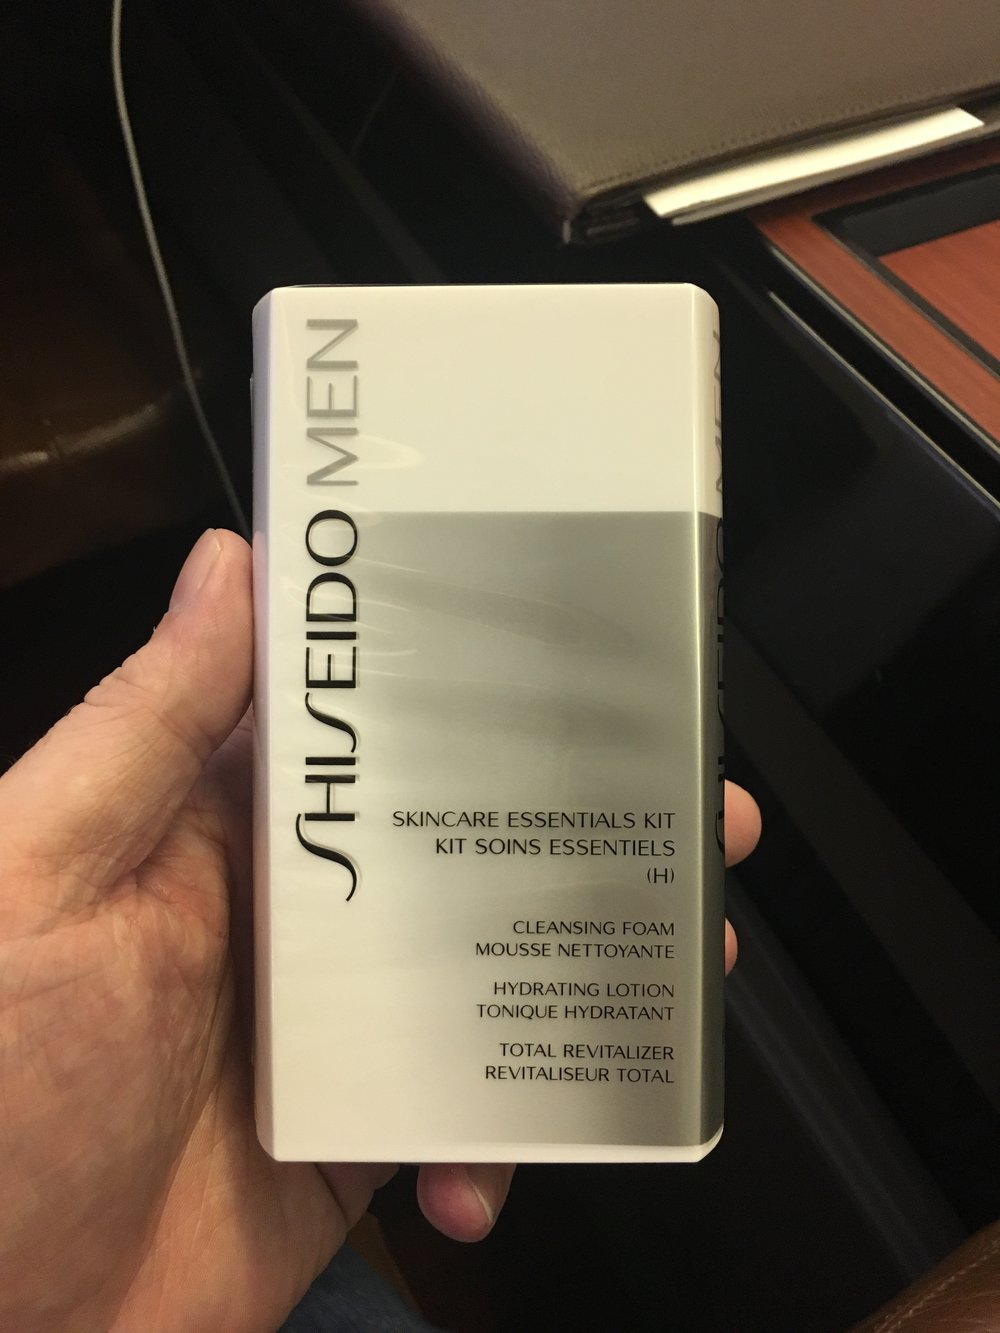 A very nice touch (though I didn't open it on the flight rather have used it at home since) of a Shiseido men's skin care kit